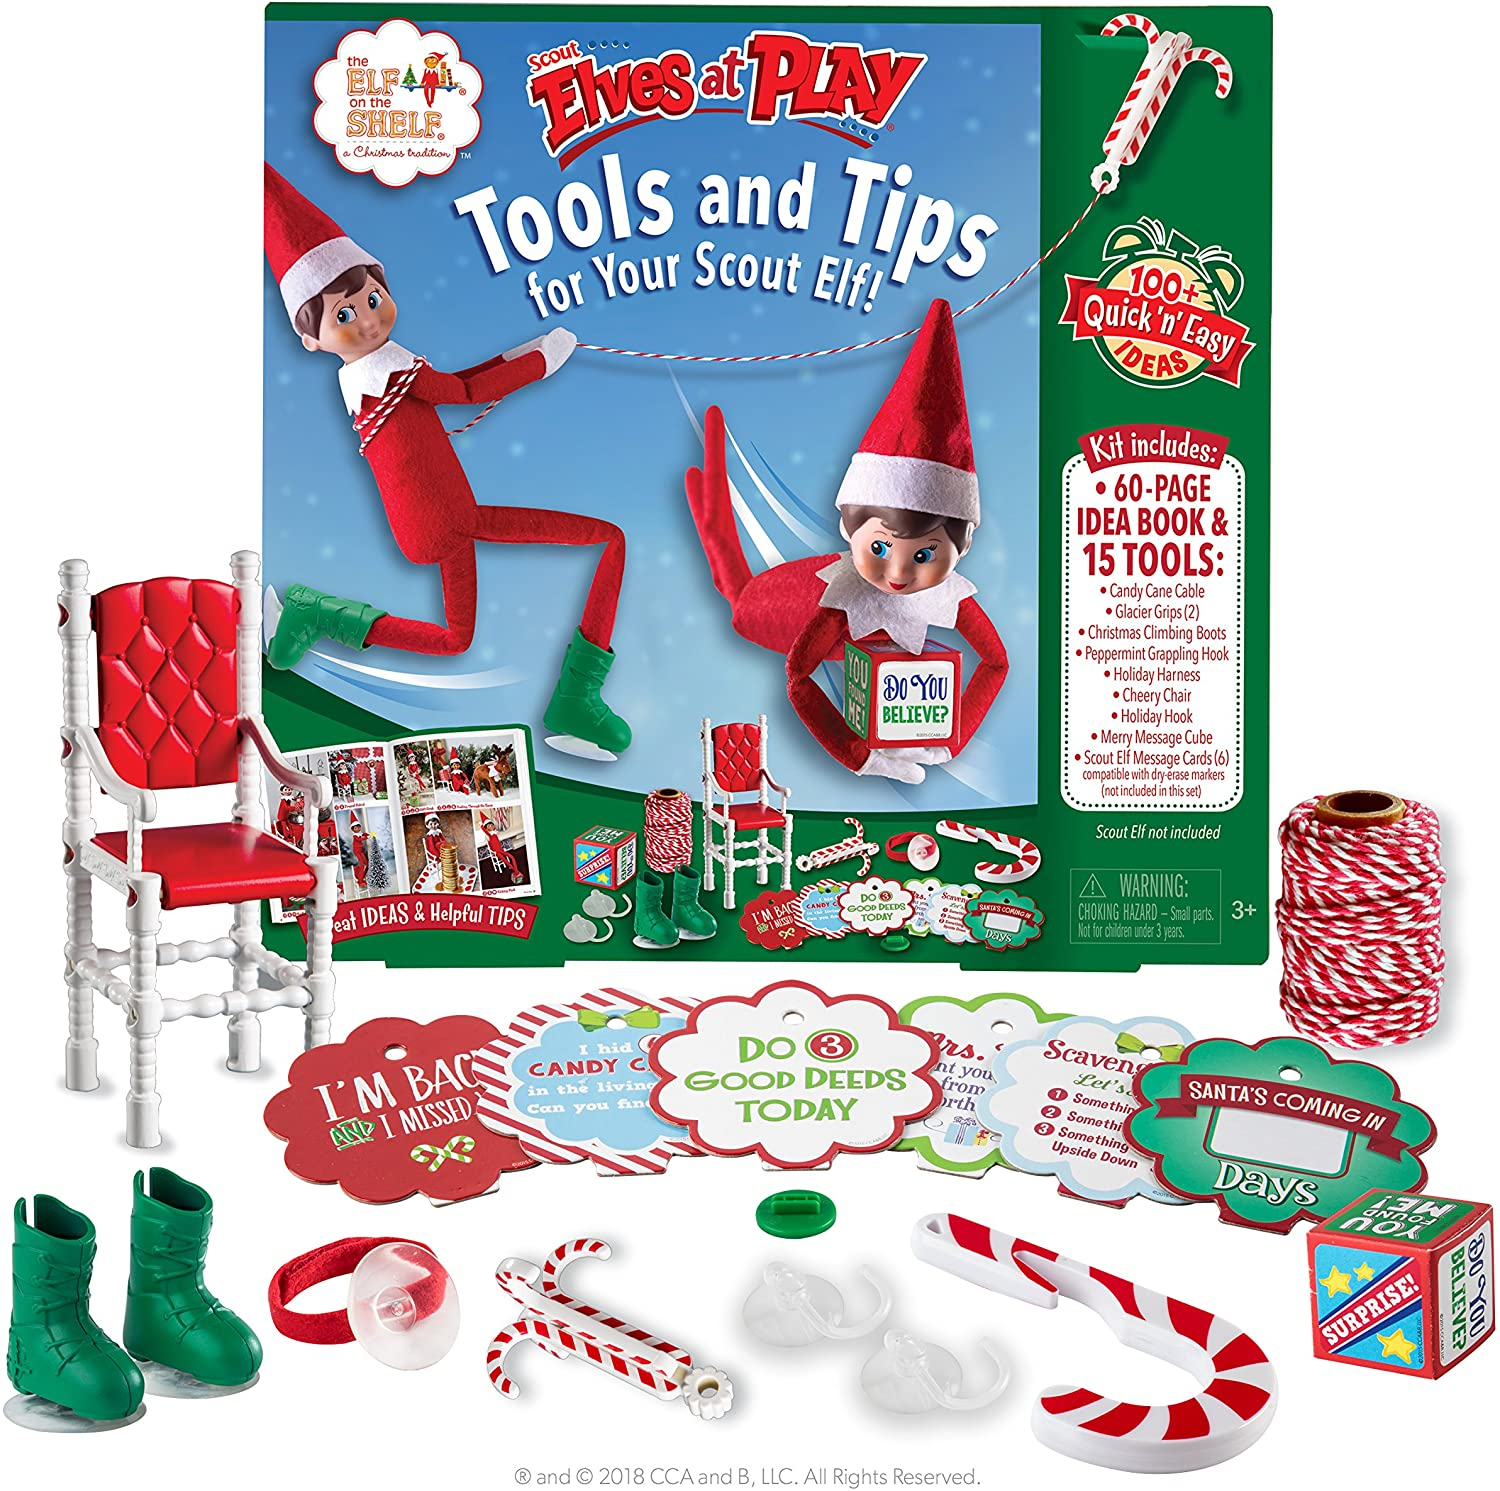 Elf On The Shelf Scout Elves at Play Kit and Set | Elf on a Shelf Christmas Accessories, Ideas and Props for Kids and Adults